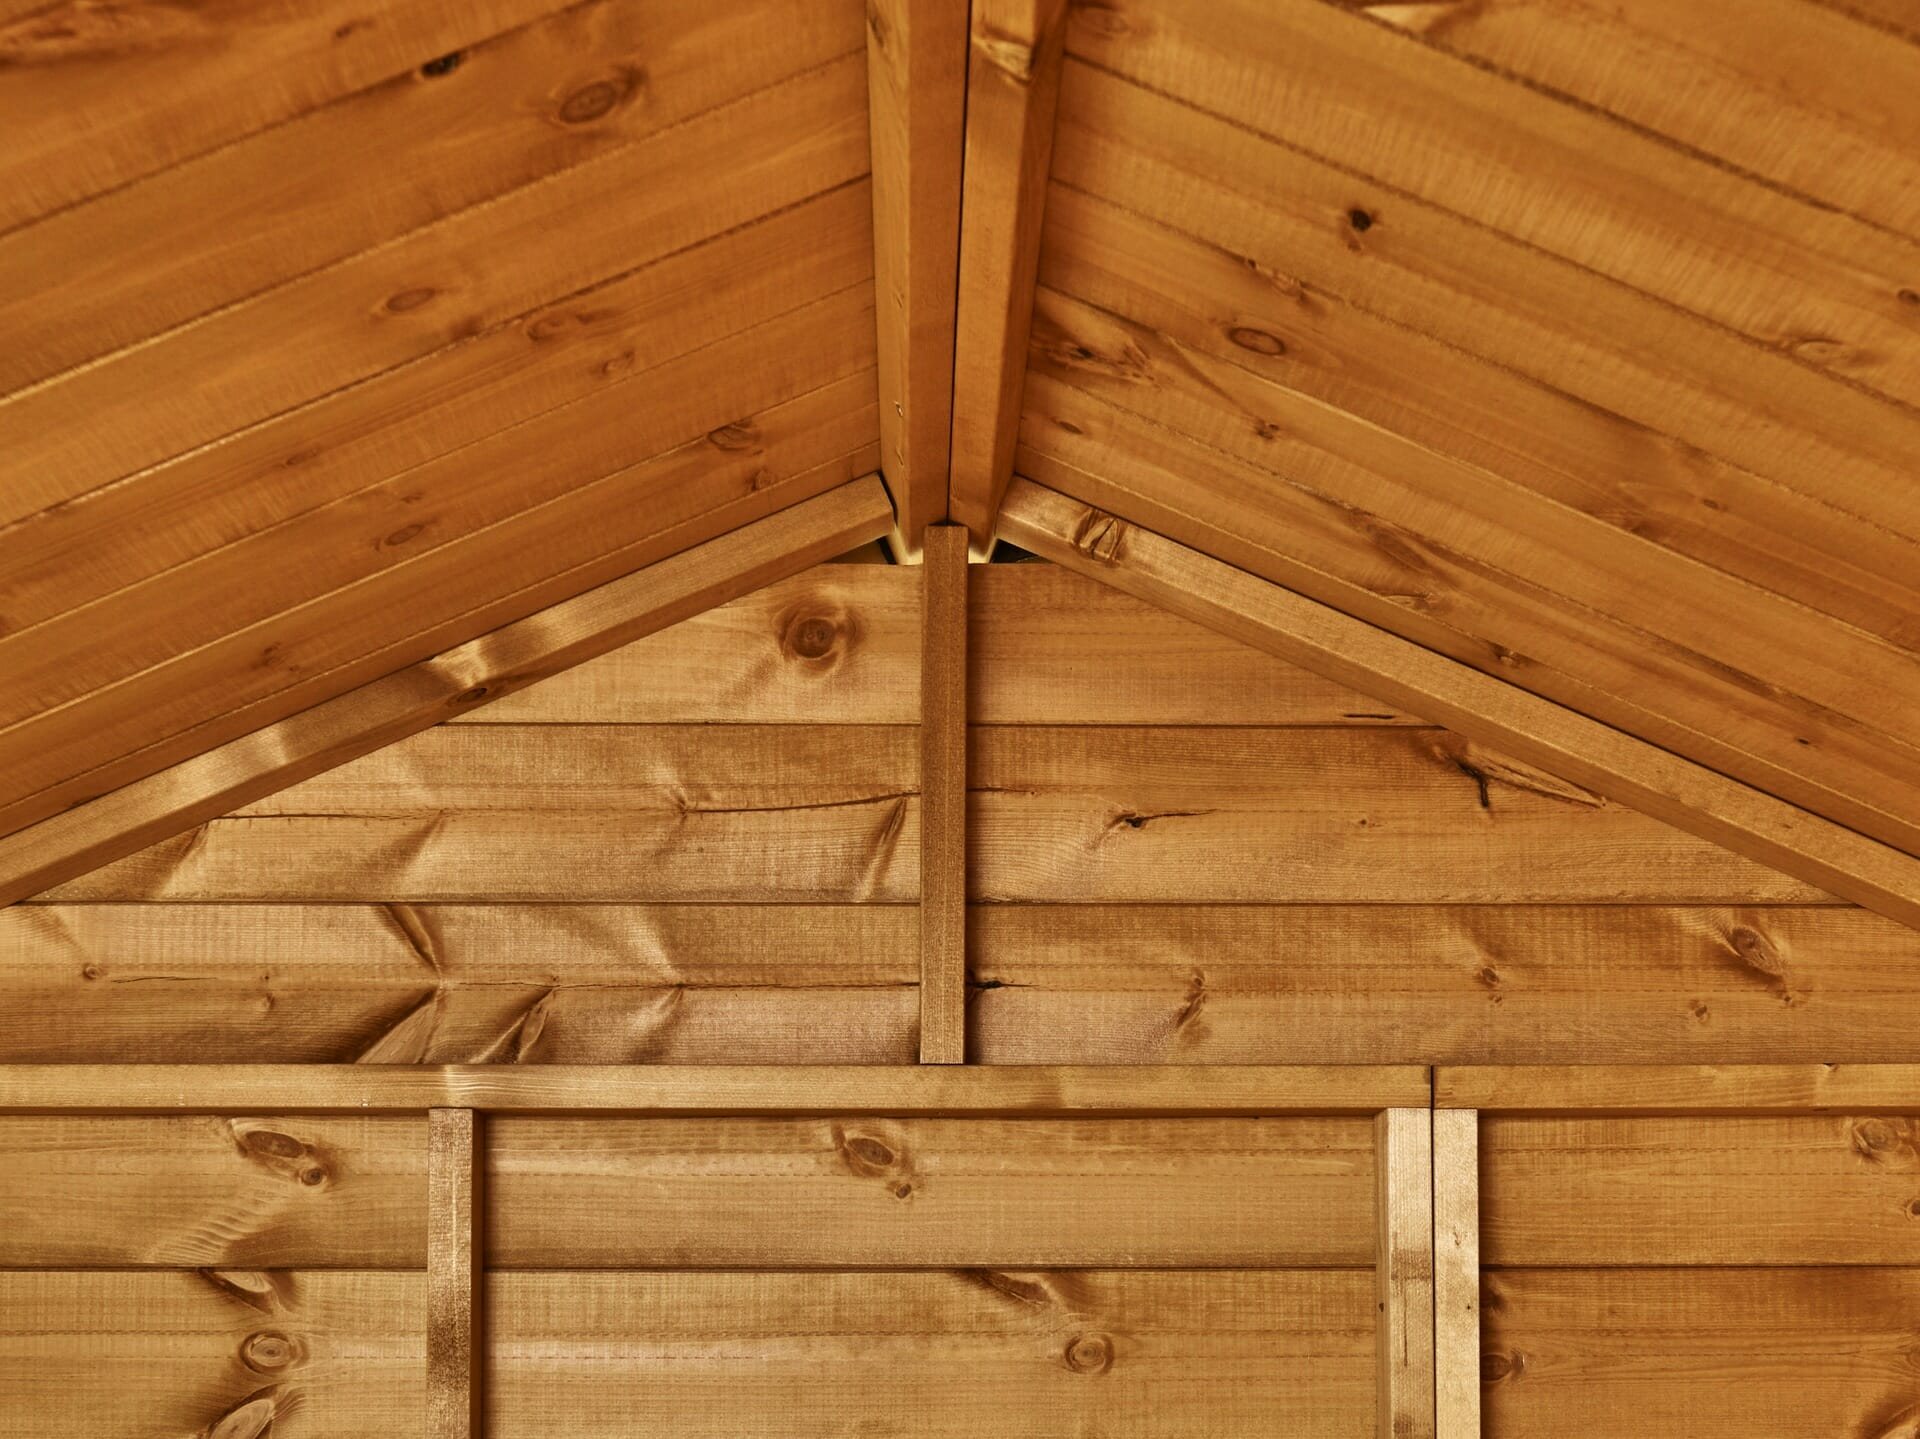 Shed roof imterior